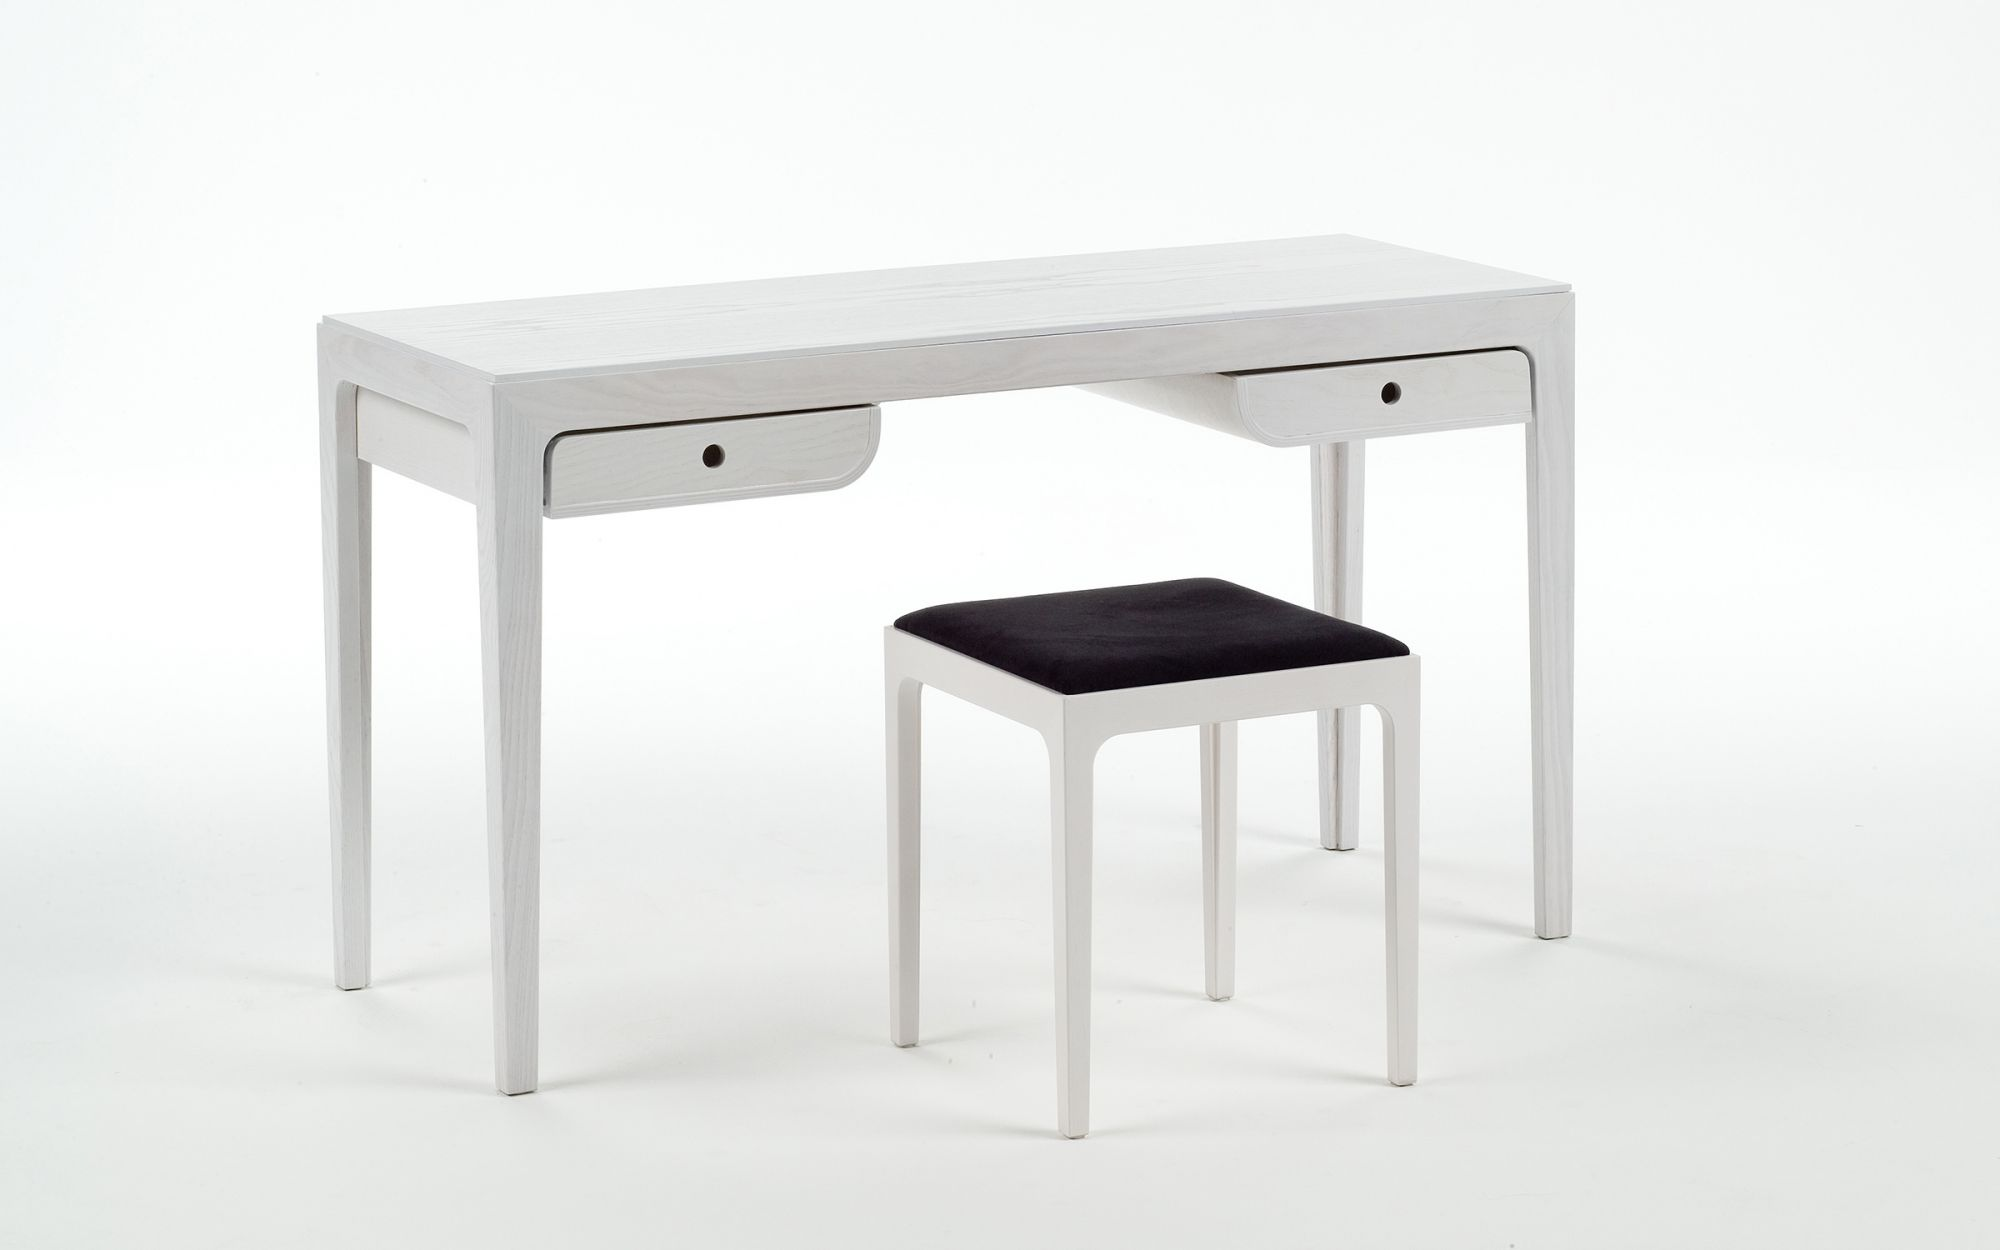 Dressingtable-stool-In-white